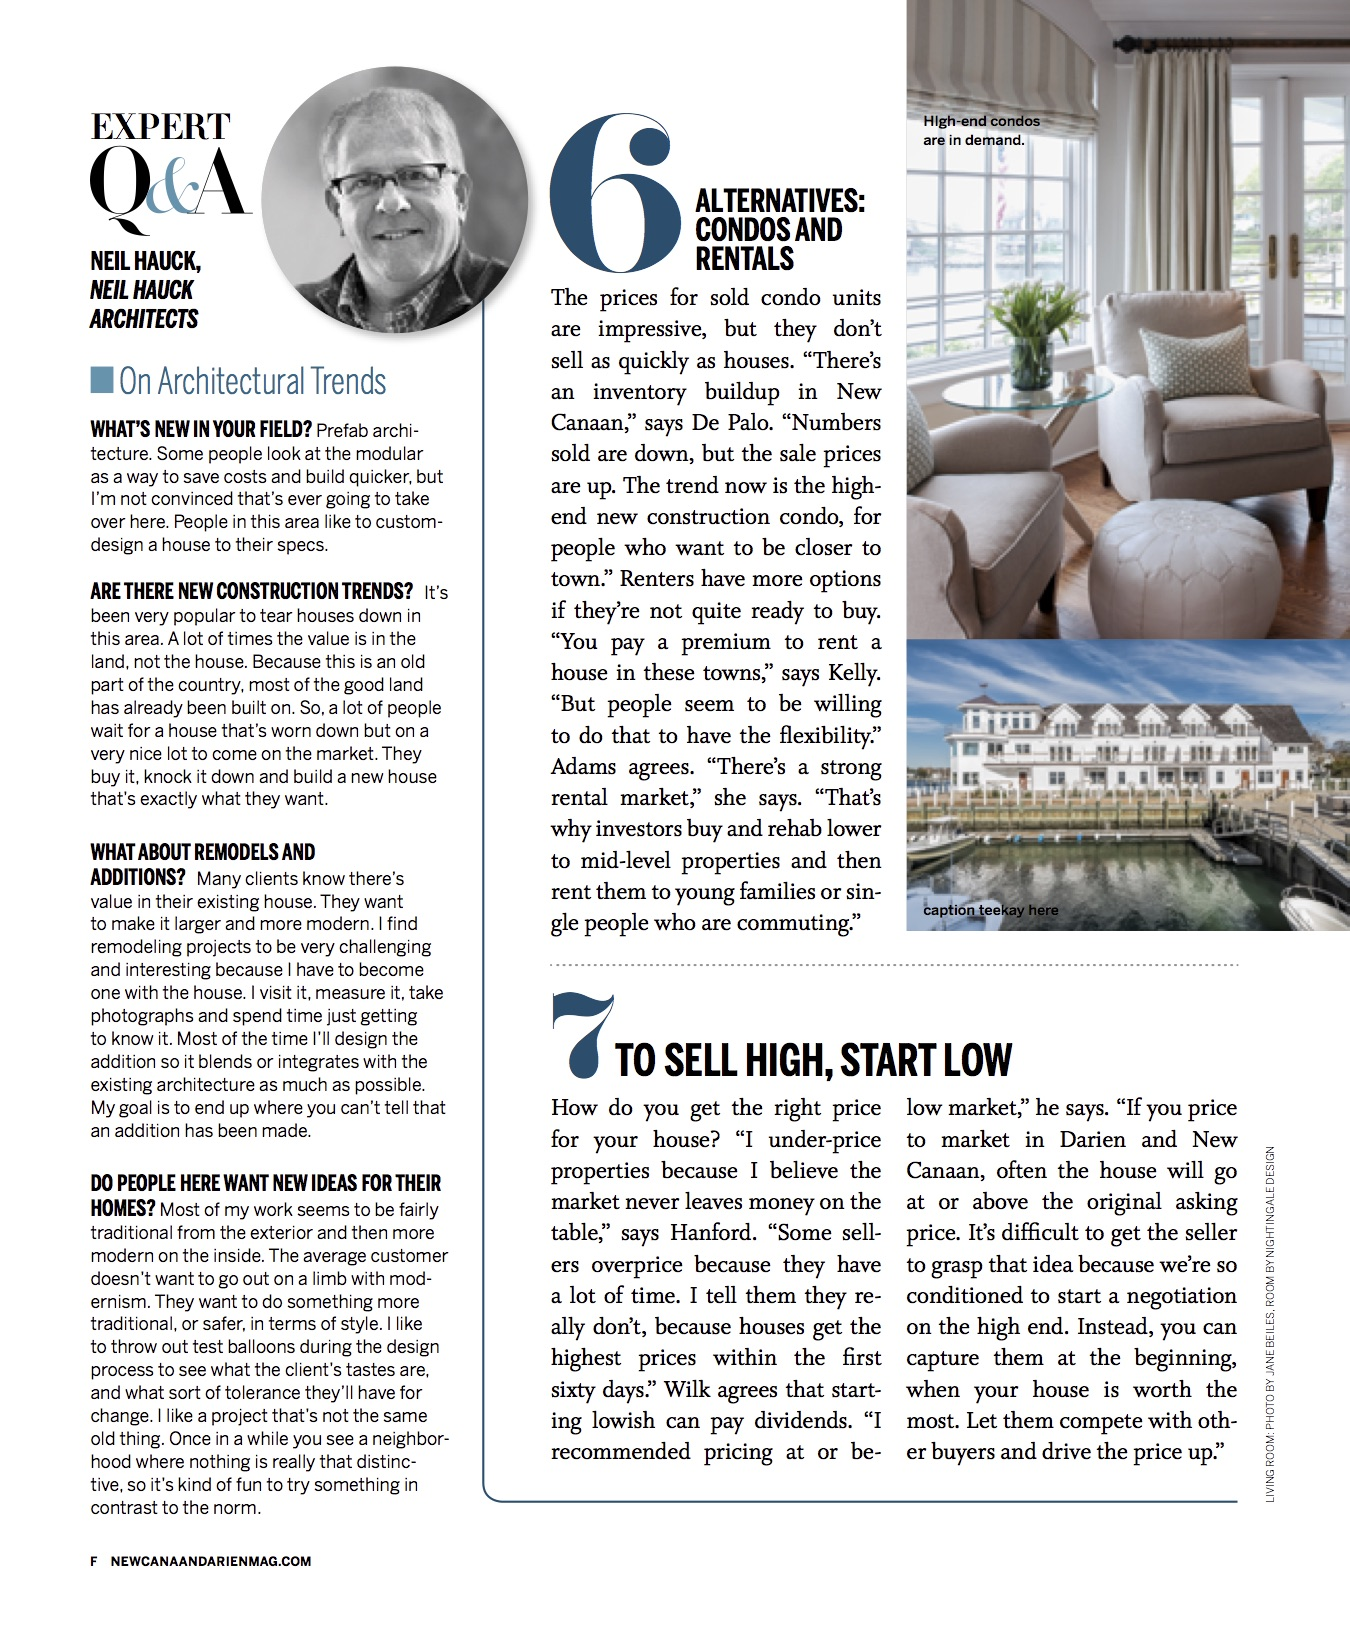 New Canaan magazine real estate story F.jpg